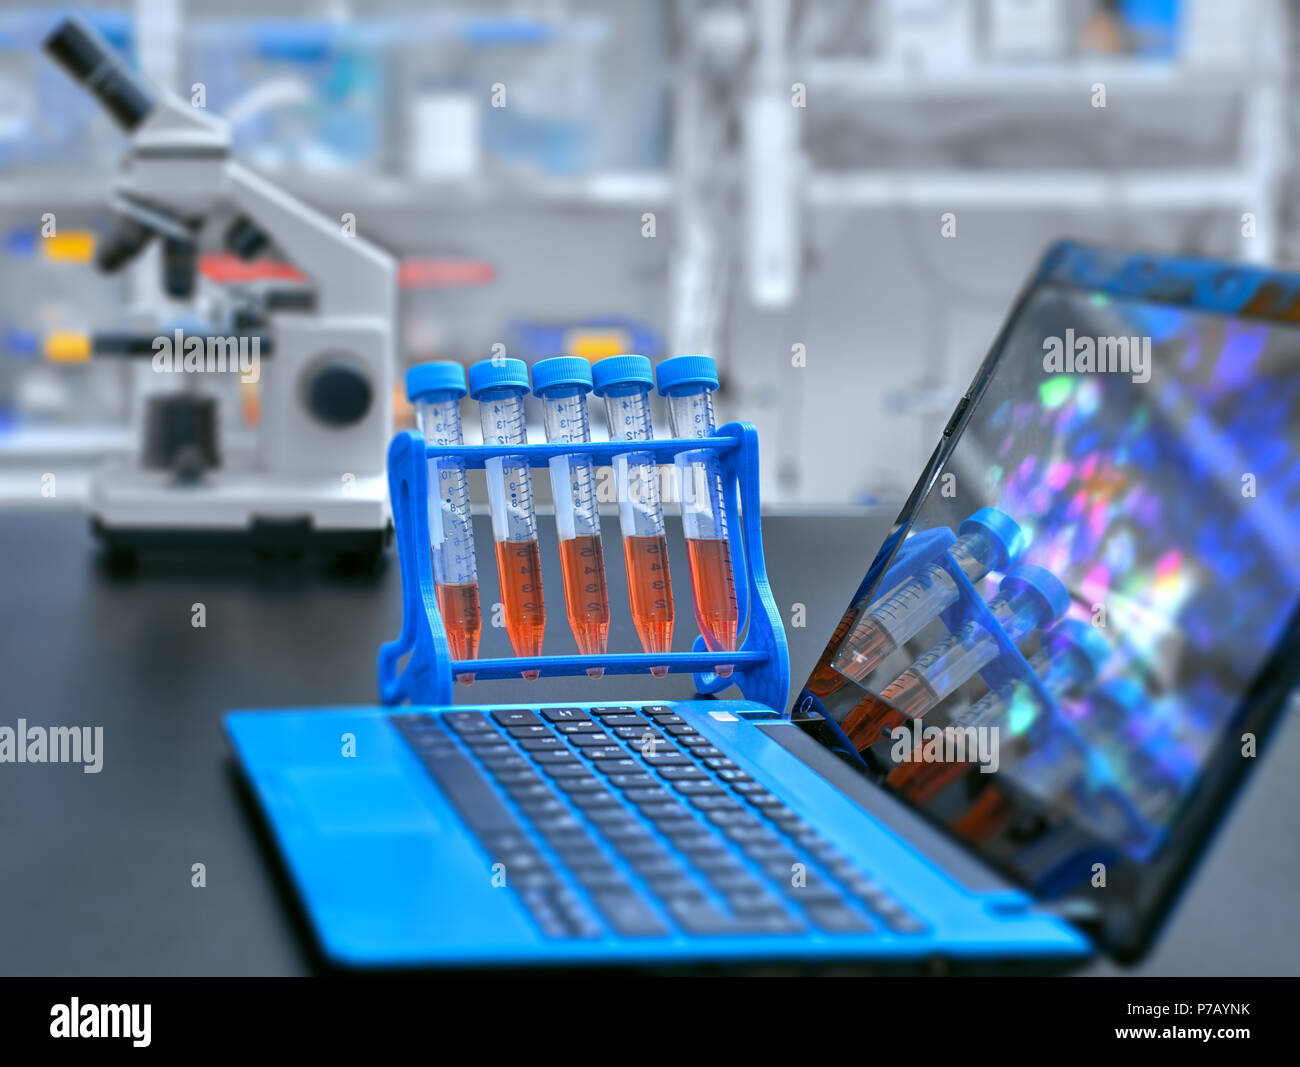 Microscope, liquid samples and portable computer with microscopic image on observation table, set up in modern laboratory - Stock Image